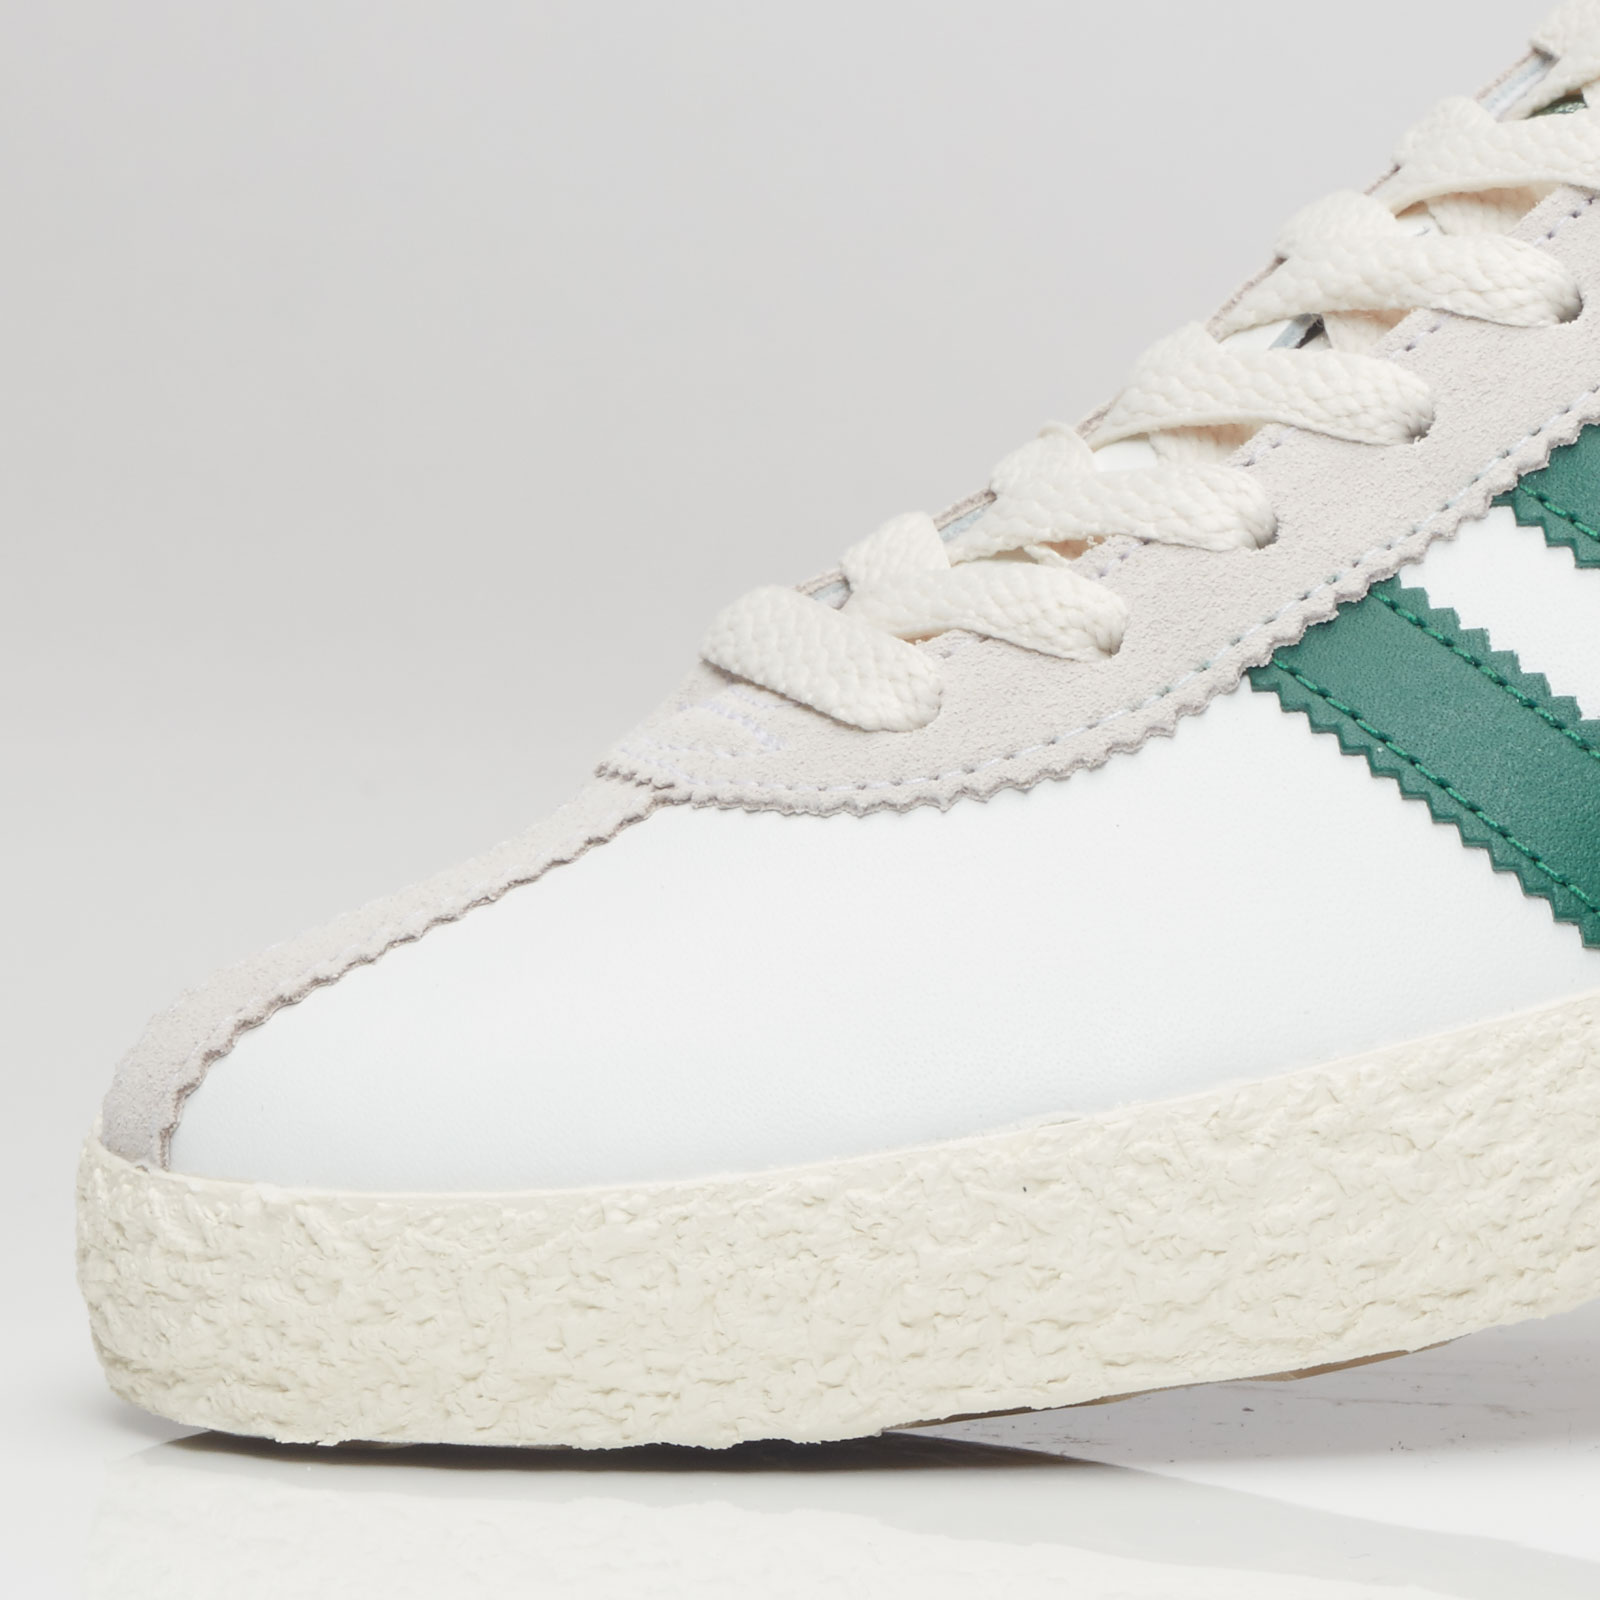 official photos 4efa8 053e9 adidas Originals Spezial Trainer - 6. Close